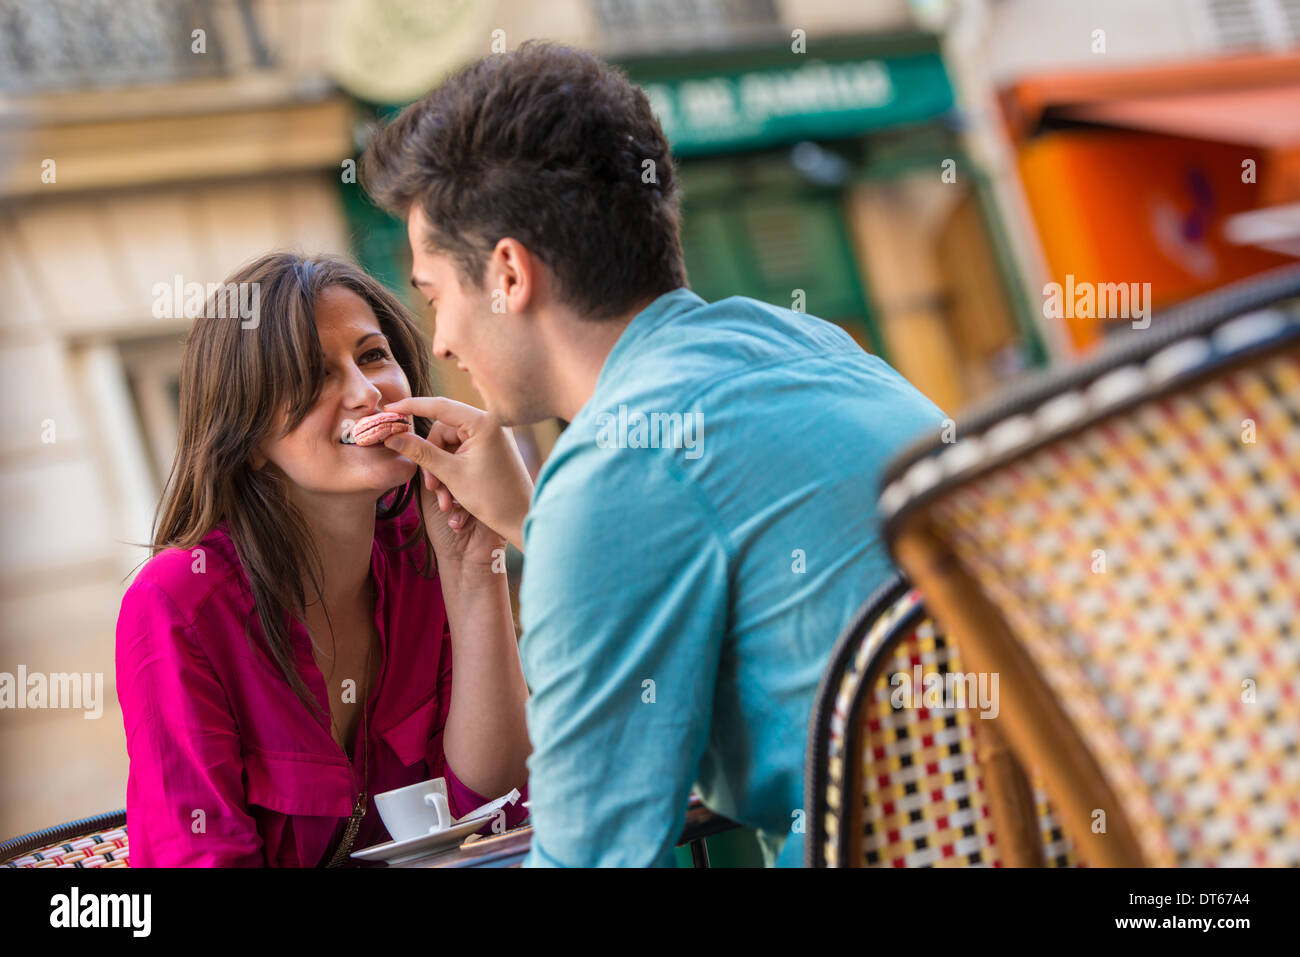 Young couple sharing macaroon at pavement cafe, Paris, France - Stock Image